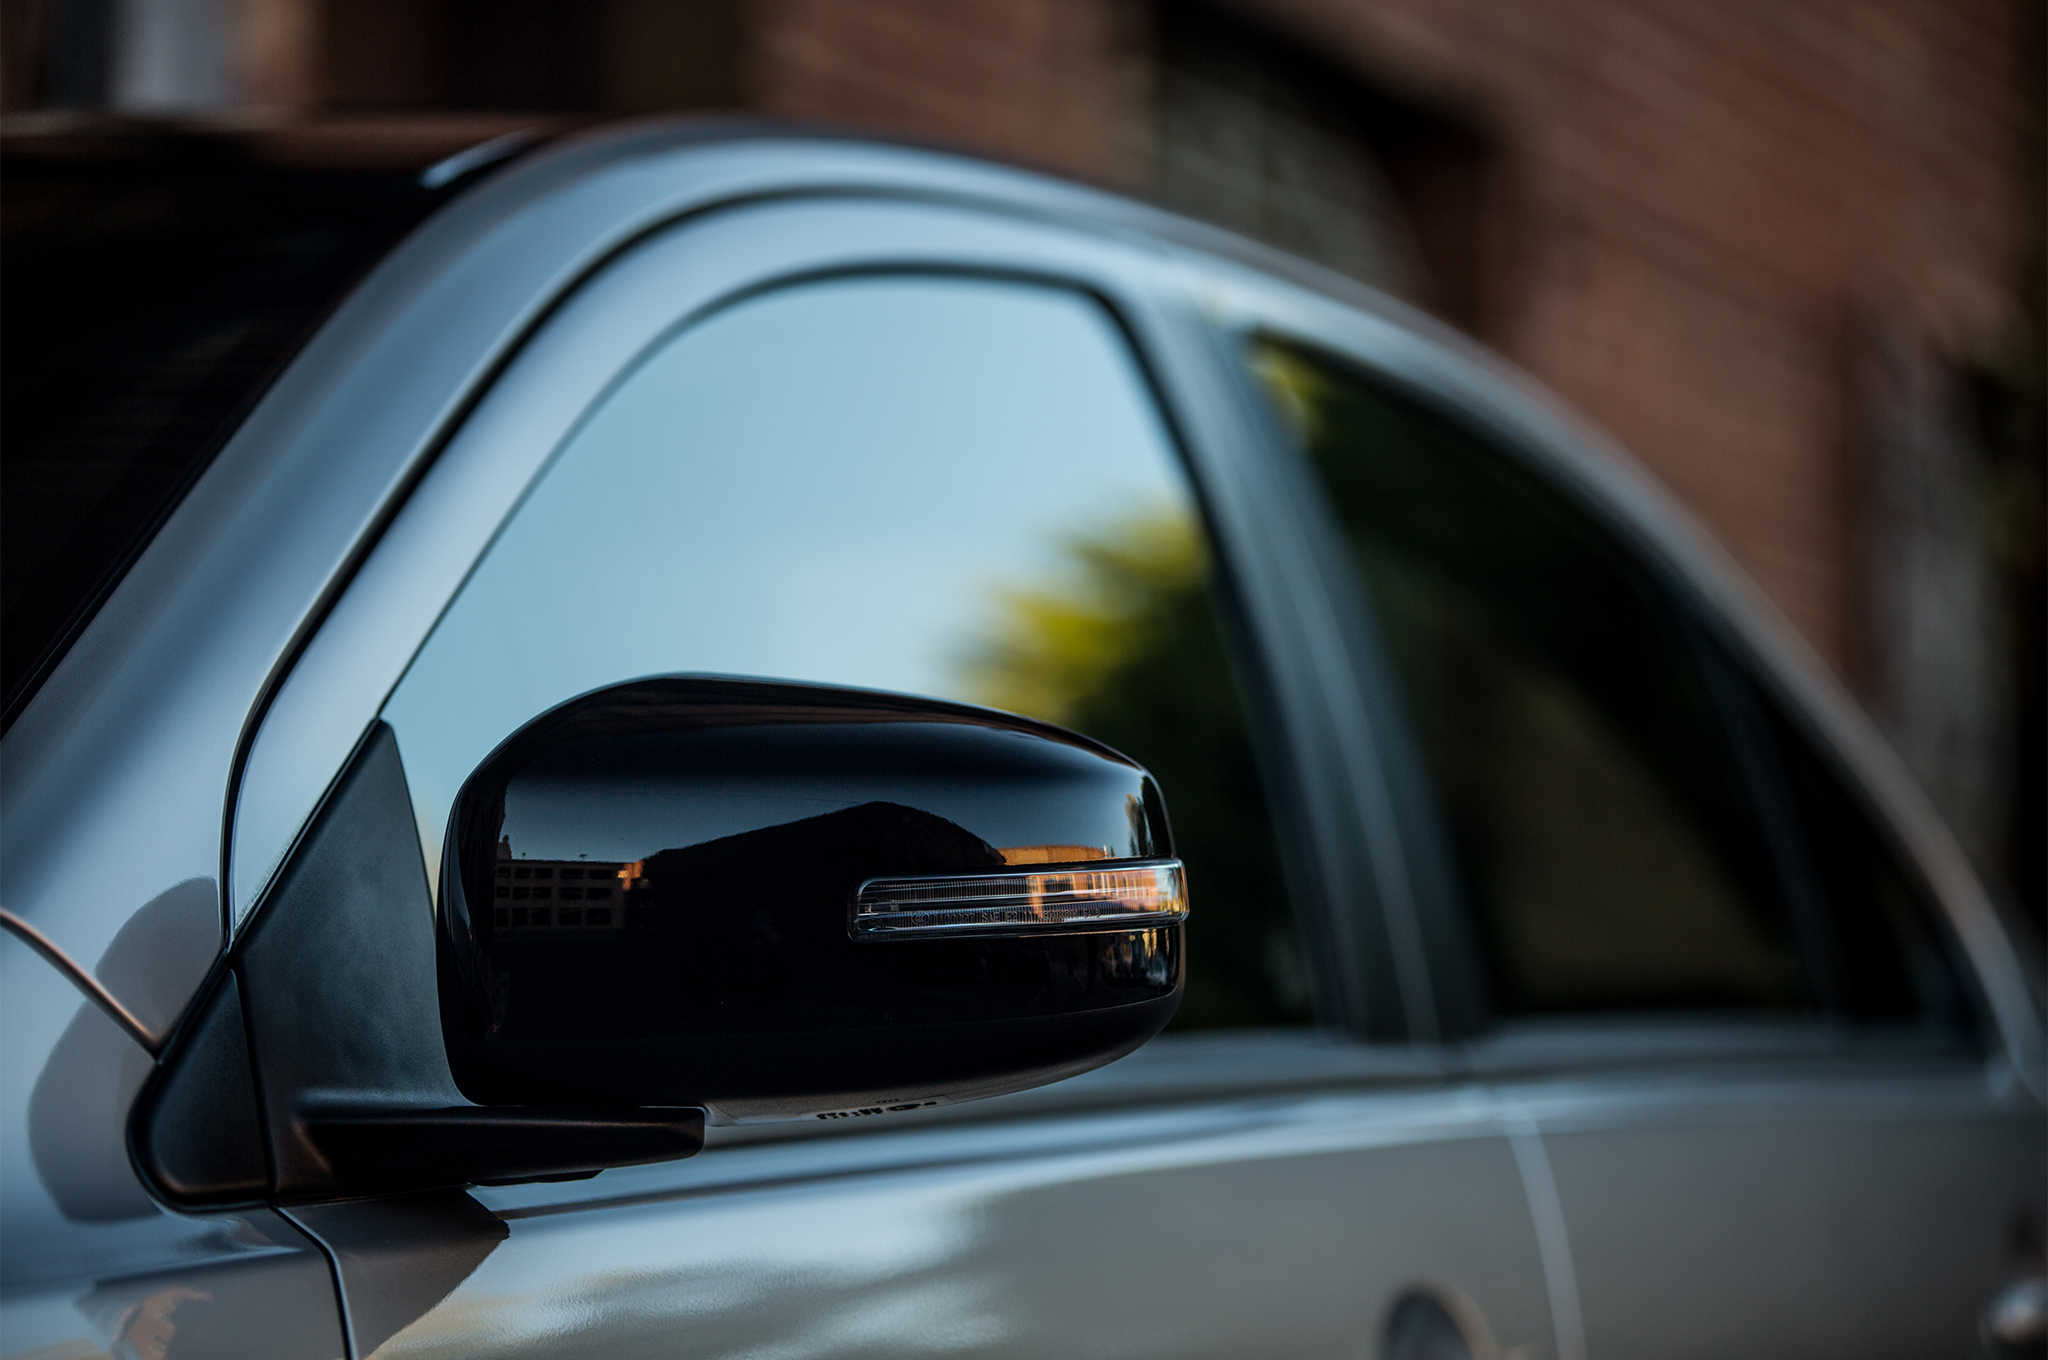 2017-Mitsubishi-Lancer-Limited-Edition-side-mirror